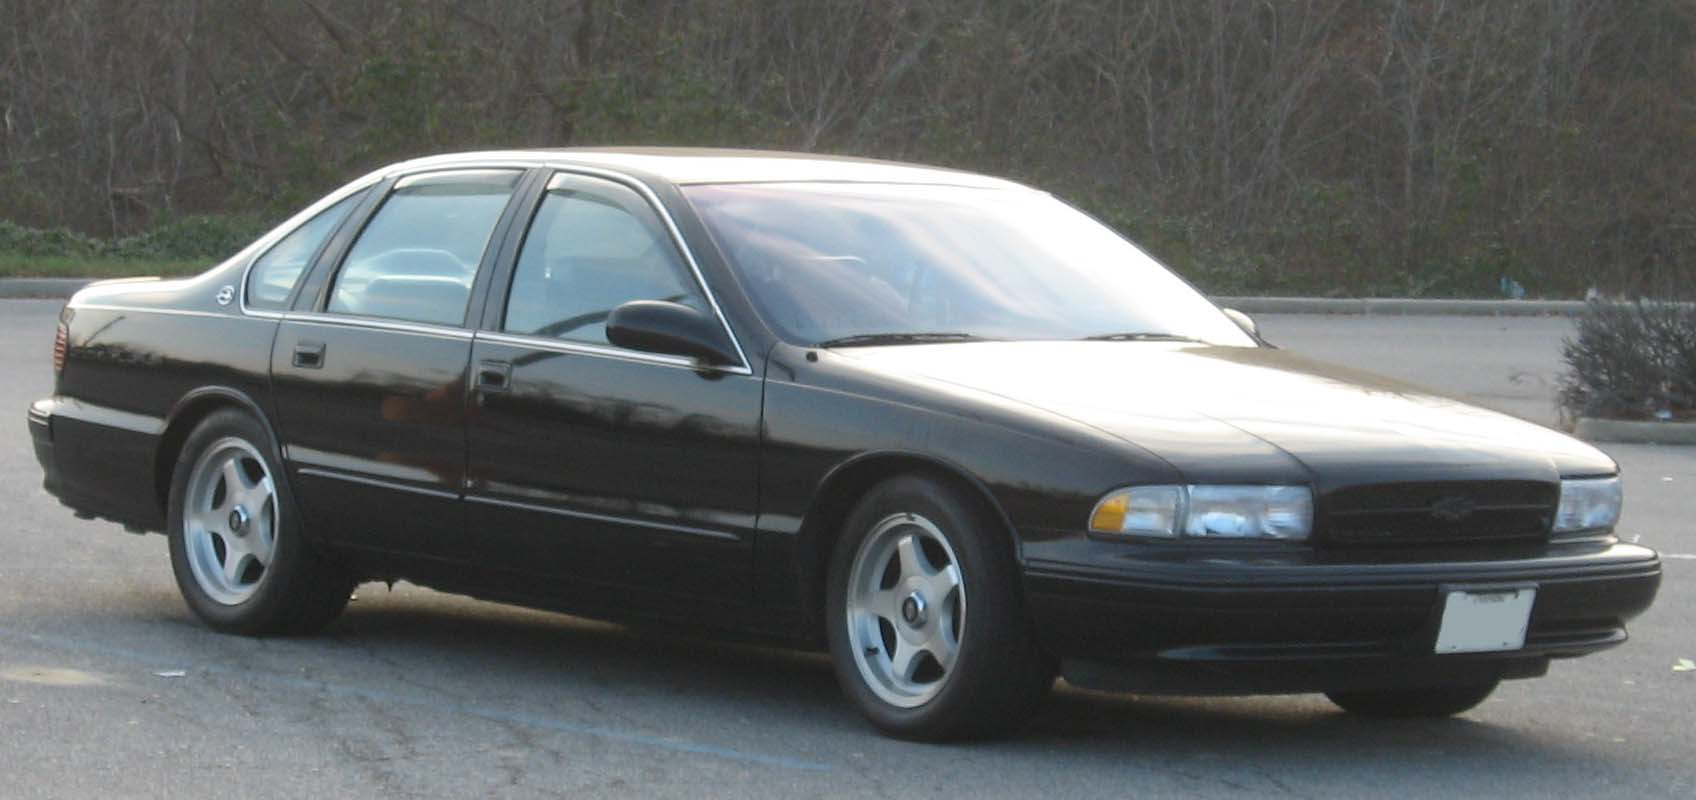 1995 Chevy Impala Ss Engine Diagram Reinvent Your Wiring 1960 My Perfect Chevrolet 3dtuning Probably The Best Car Rh Com